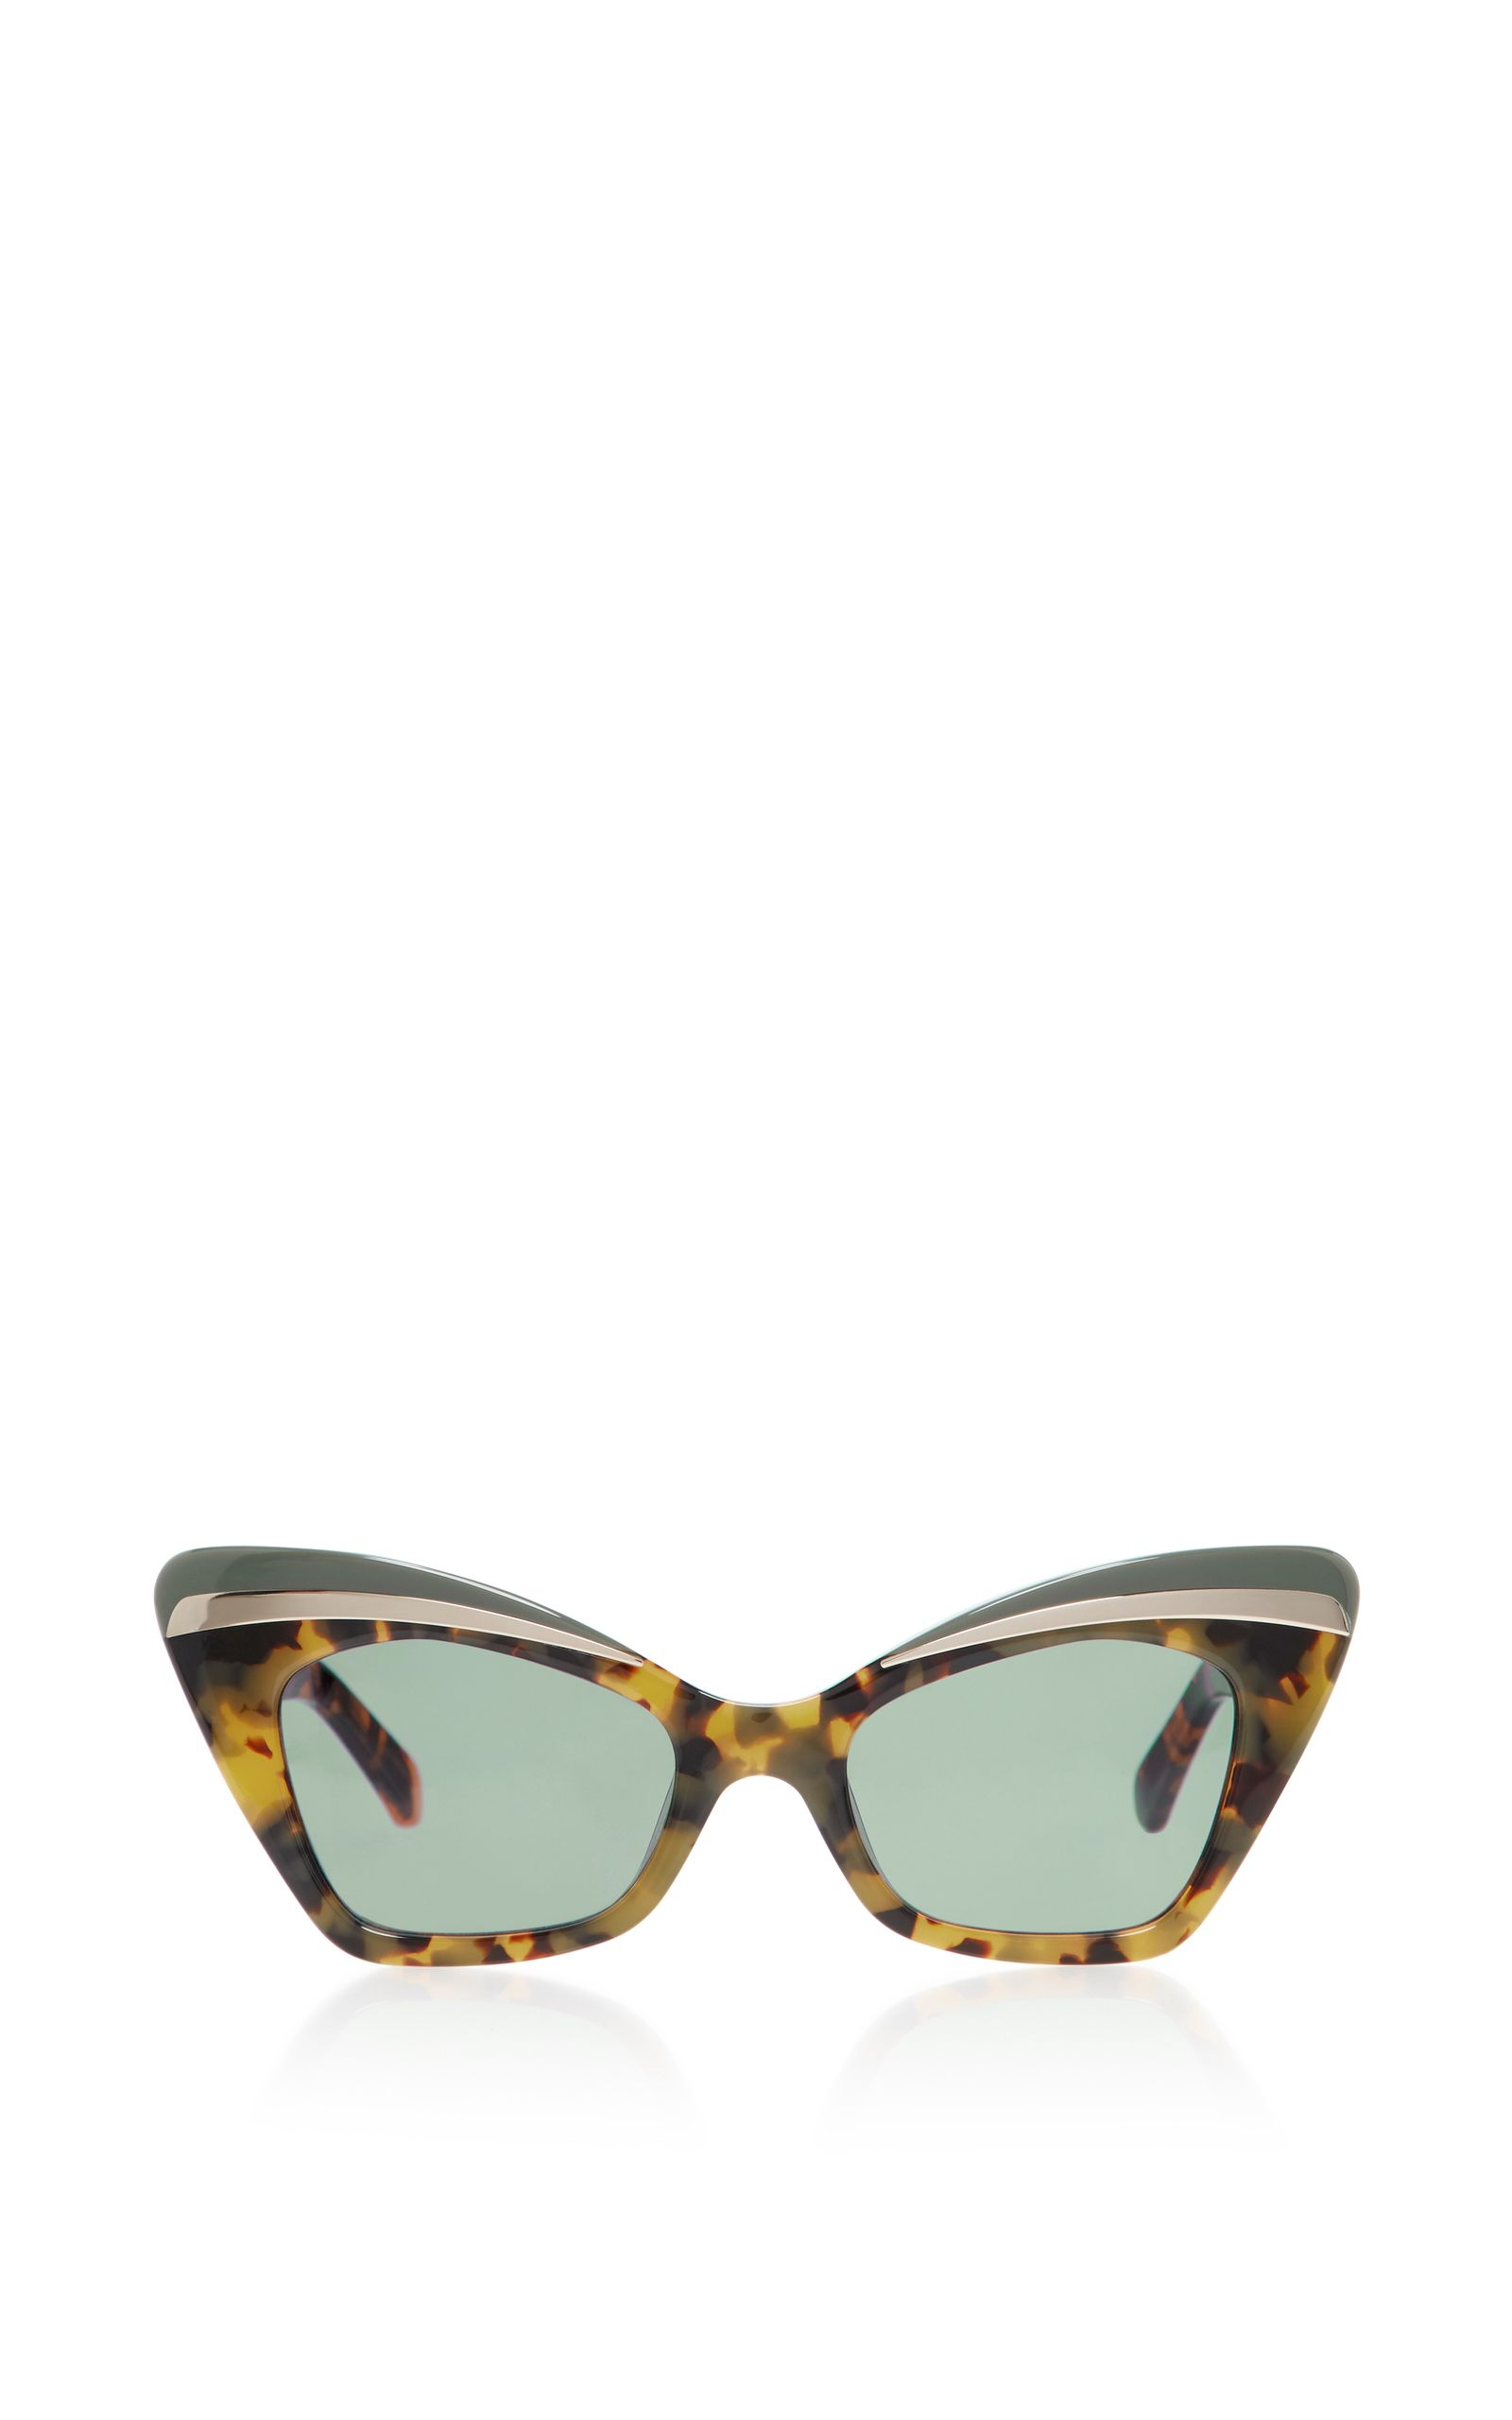 Babou Black Cat-Eye Acetate and Metal Sunglasses Karen Walker